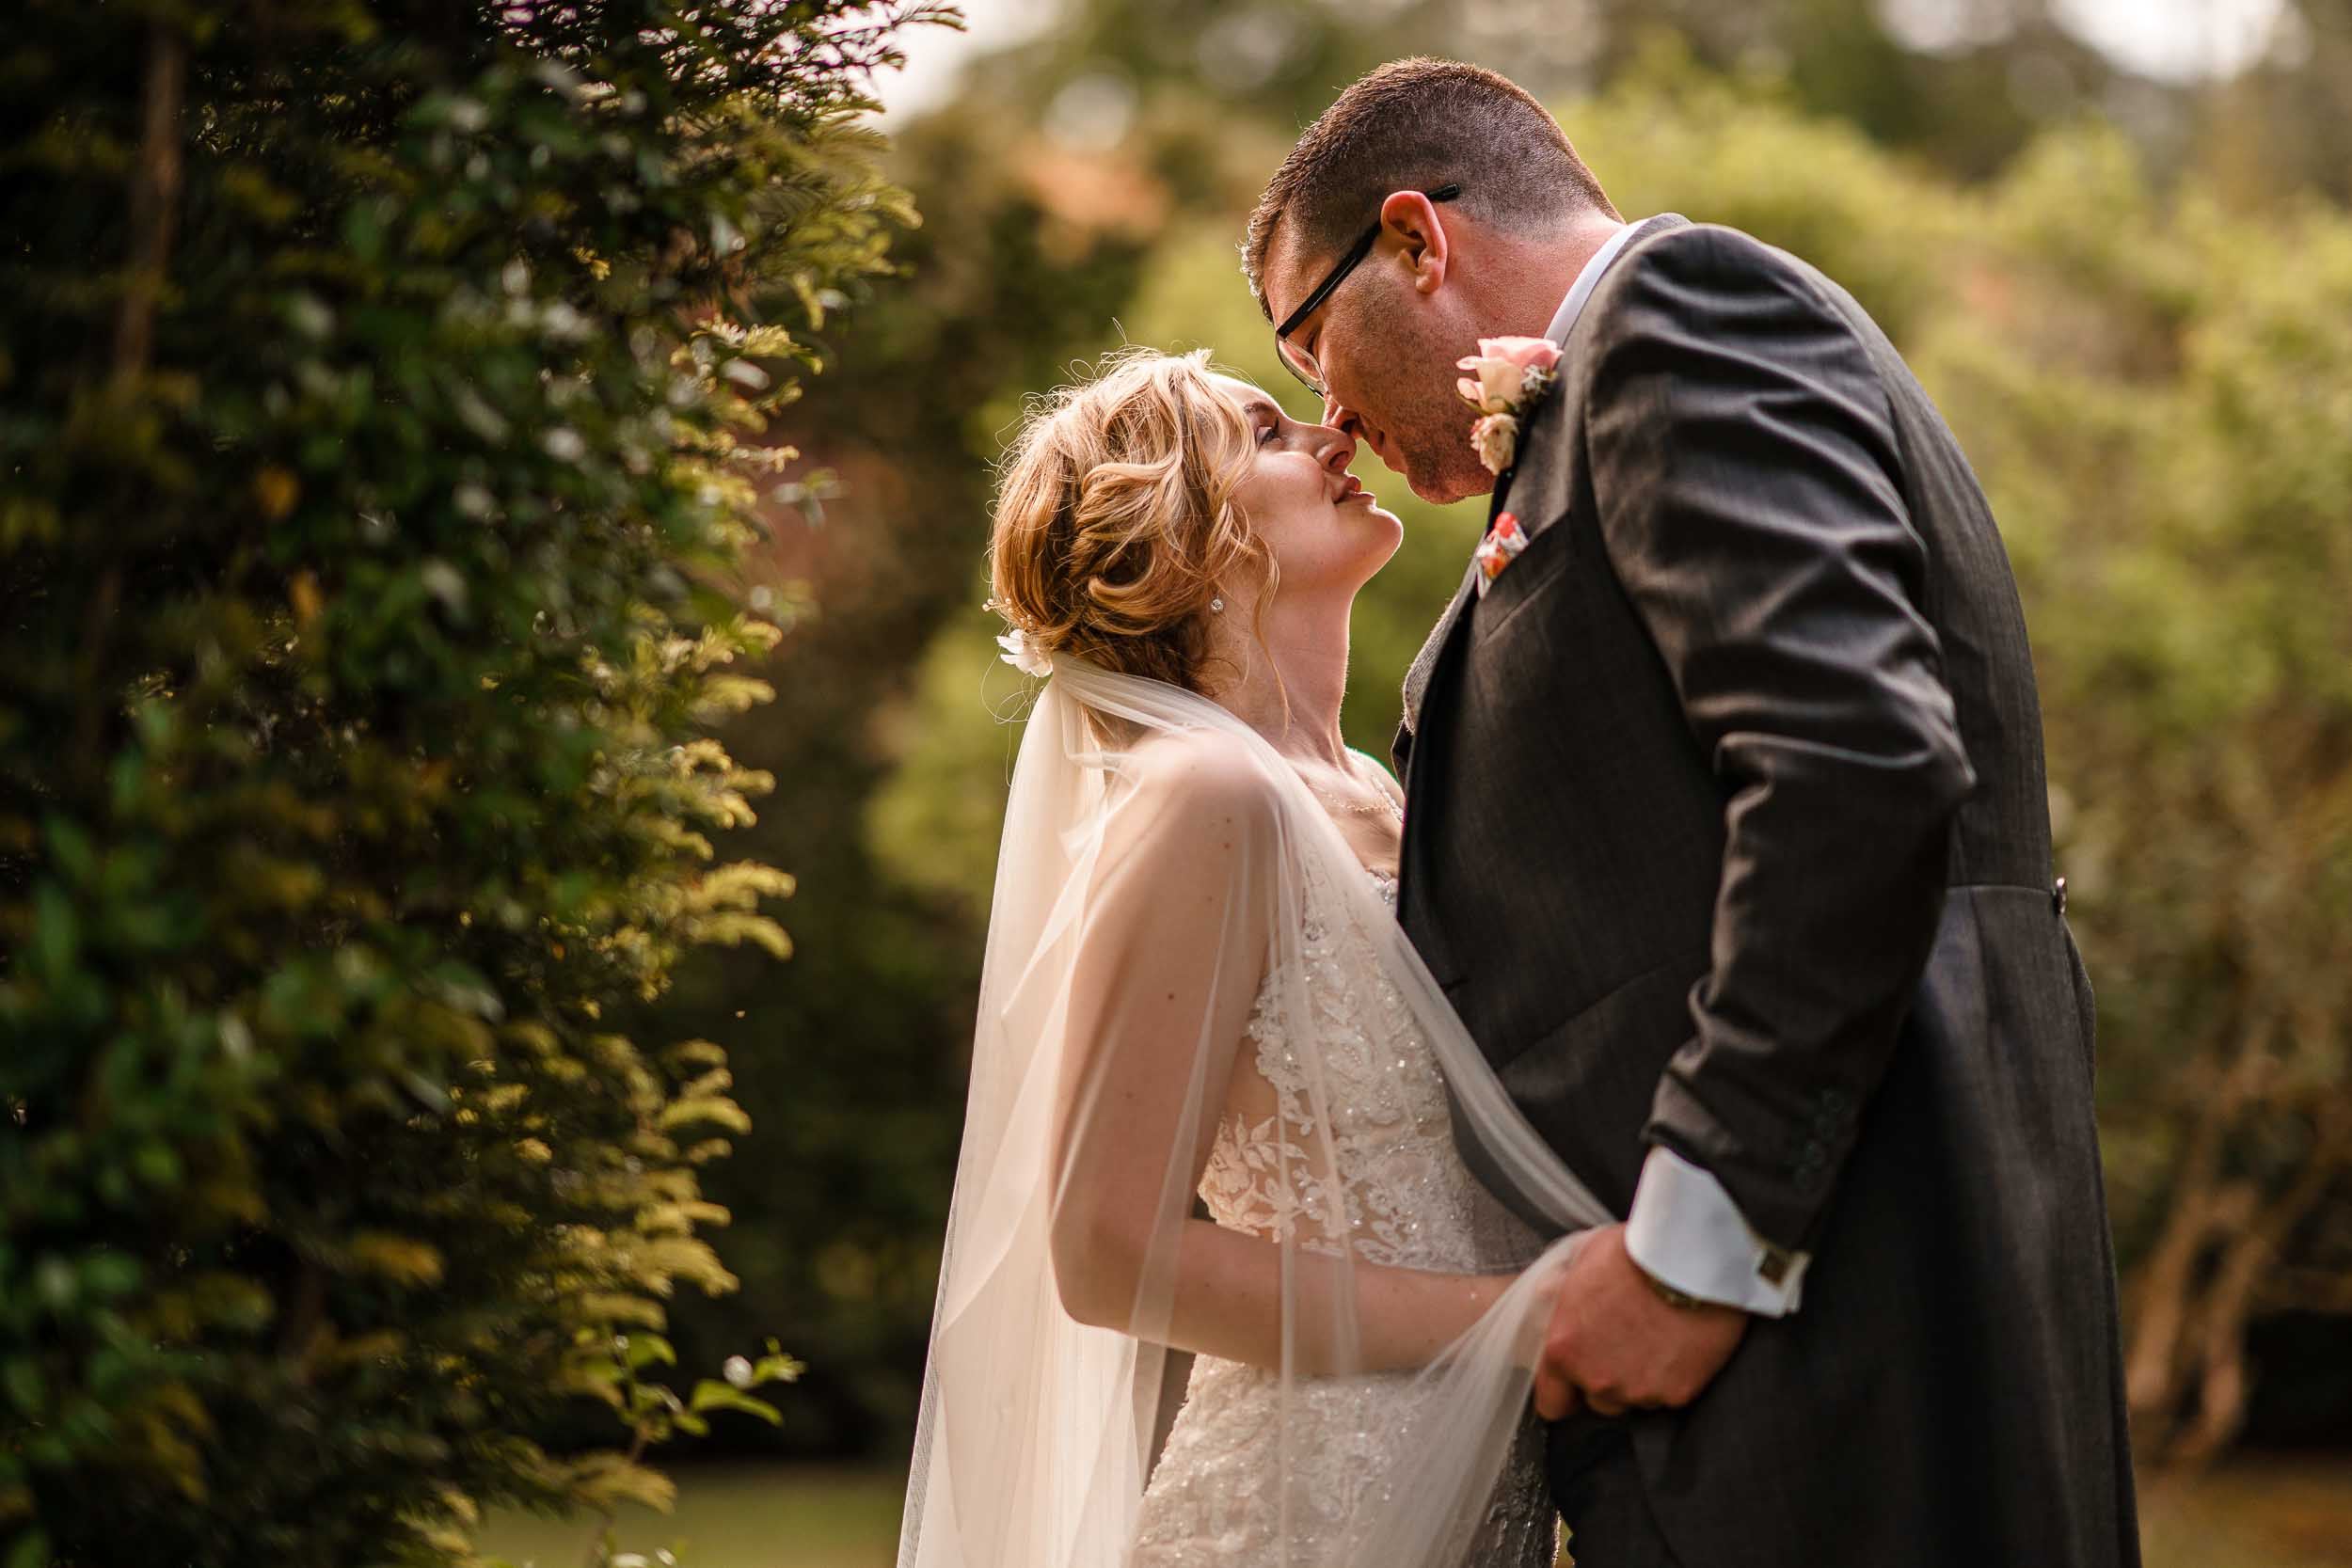 Hare and Hounds Hotel Wedding Photographer - Gloucestershire wedding